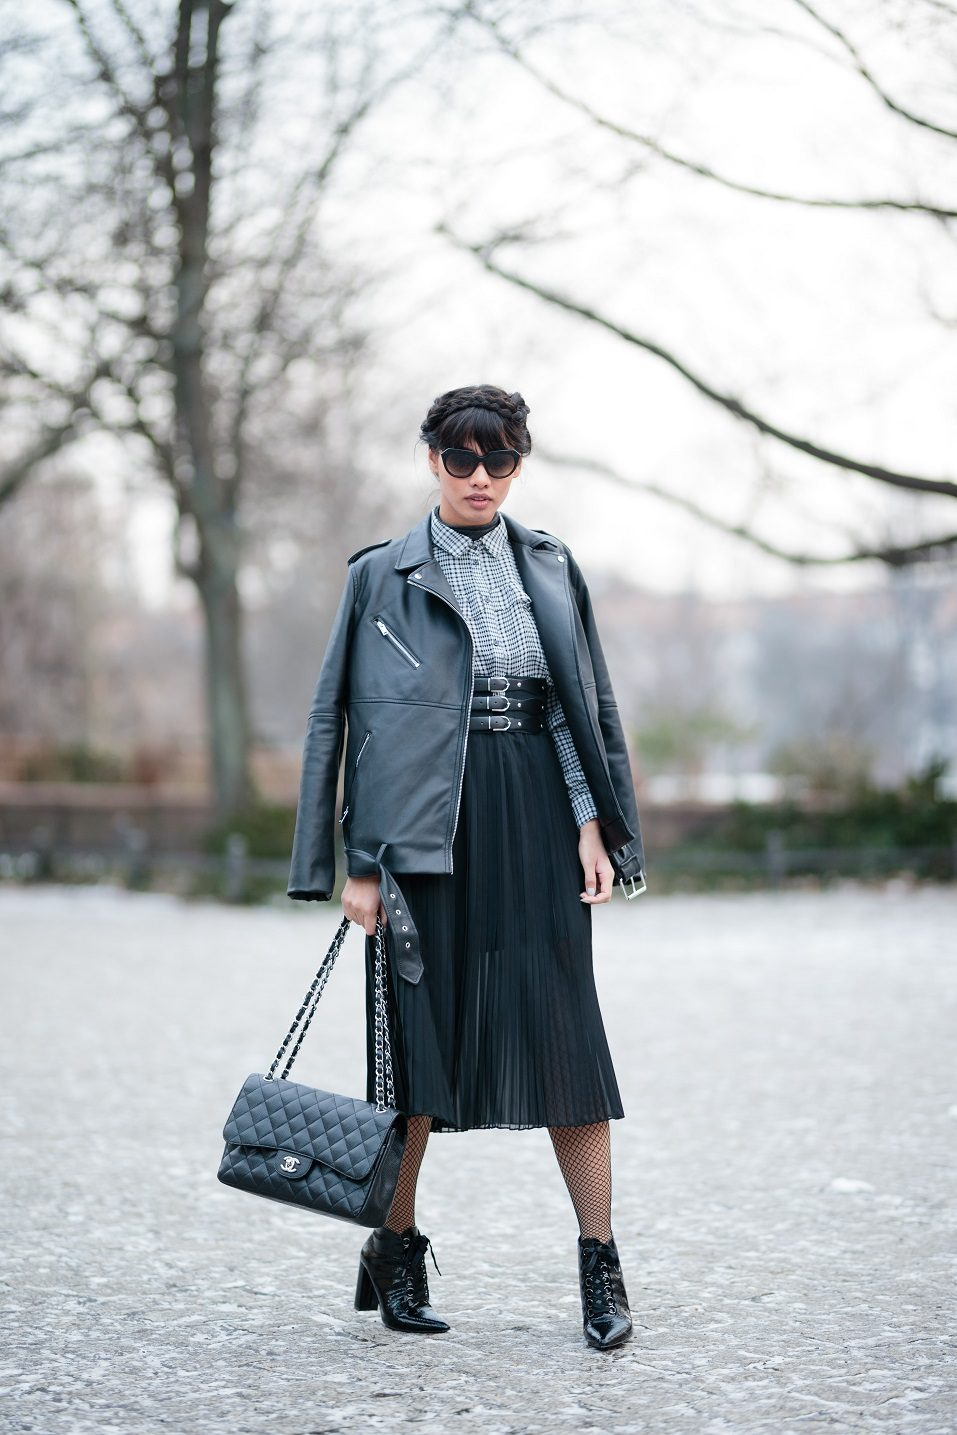 Diana Buenger, aka The Fashion Anarchy poses for photos during the Mercedes-Benz Fashion Week